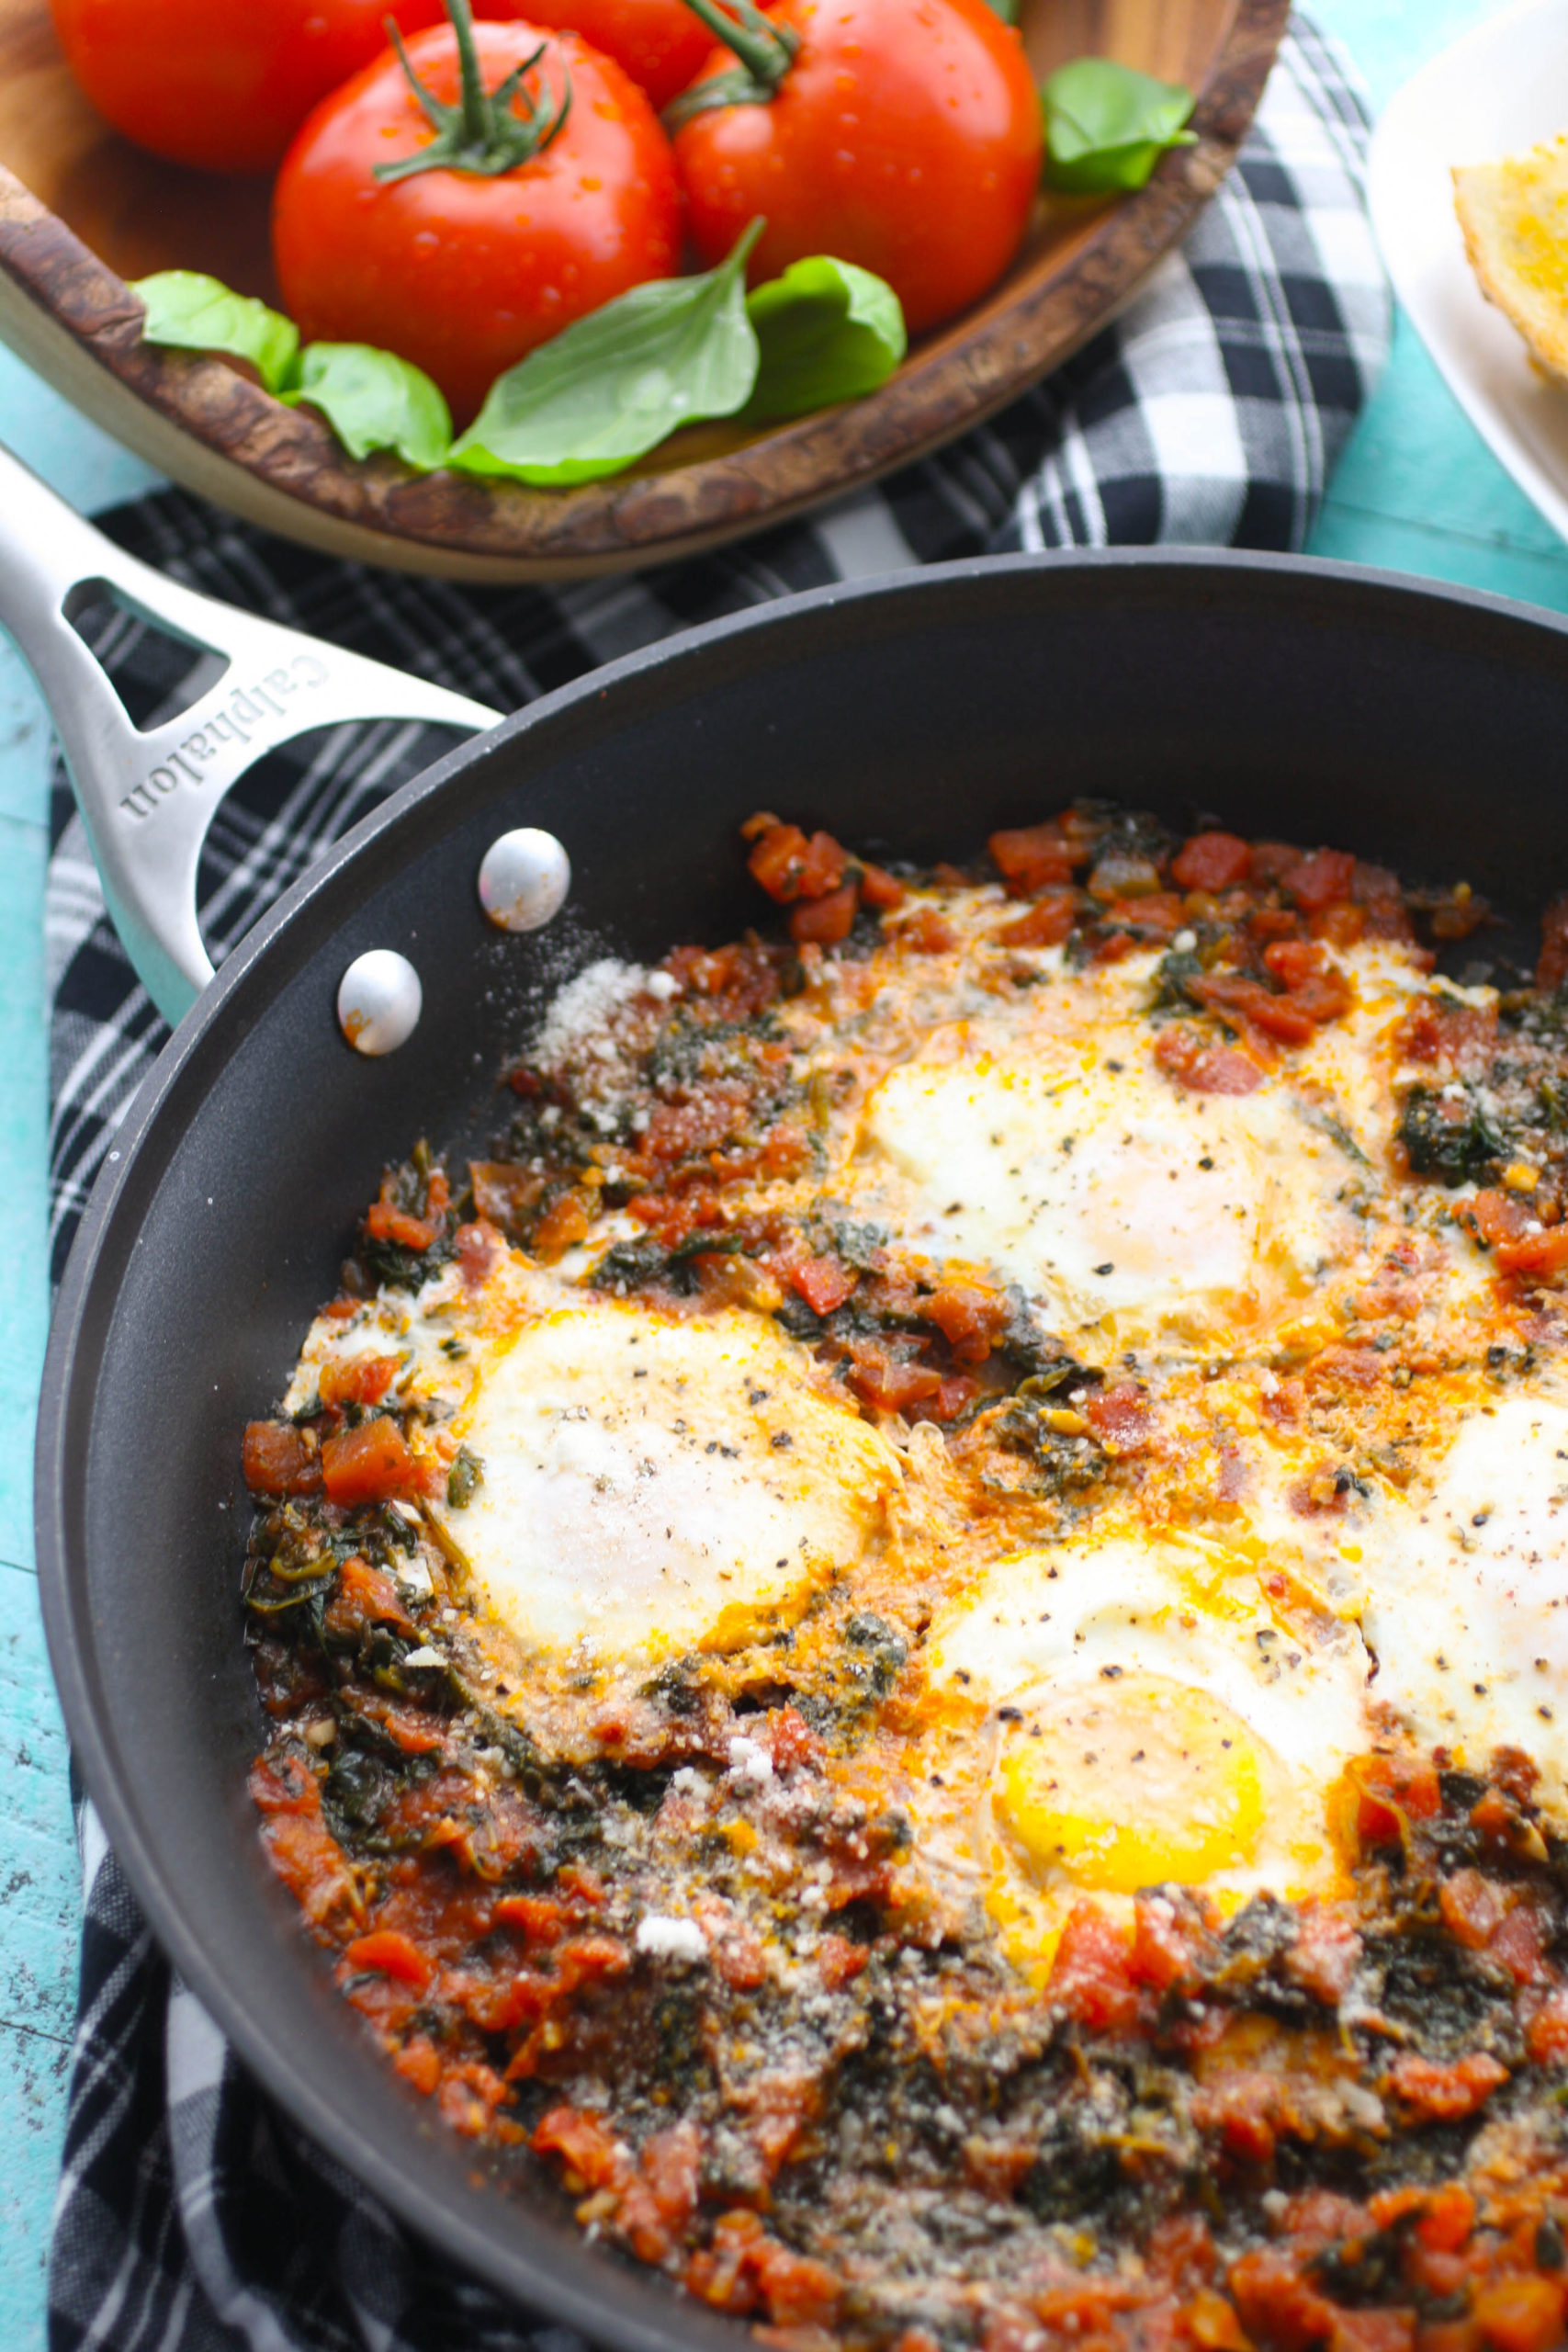 Enjoy Eggs in Purgatory for your next meal.